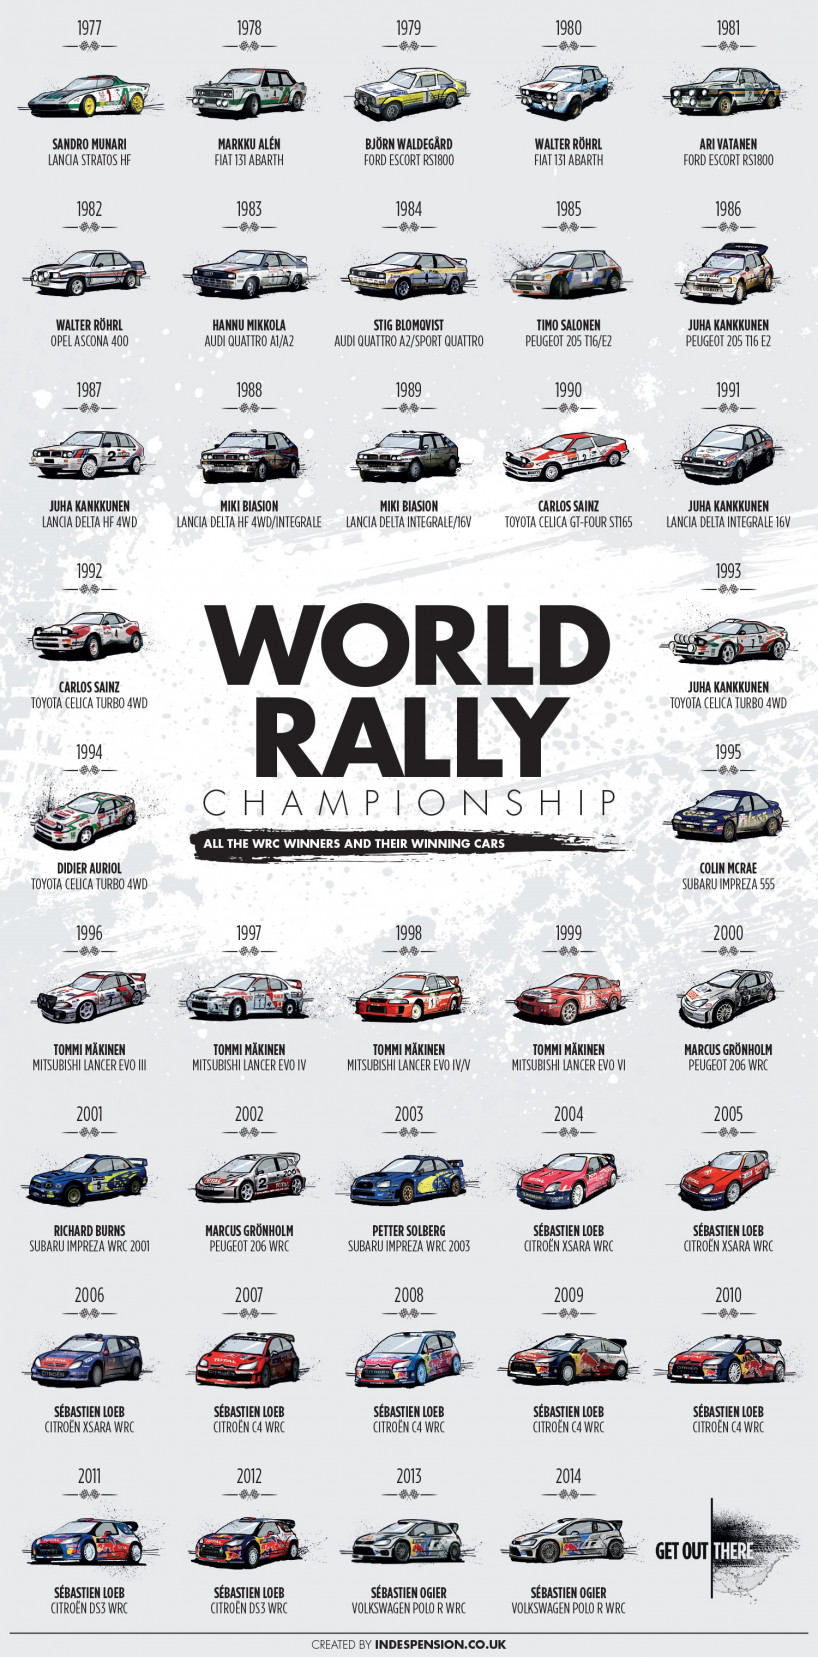 All the Winners of the World Rally Championship